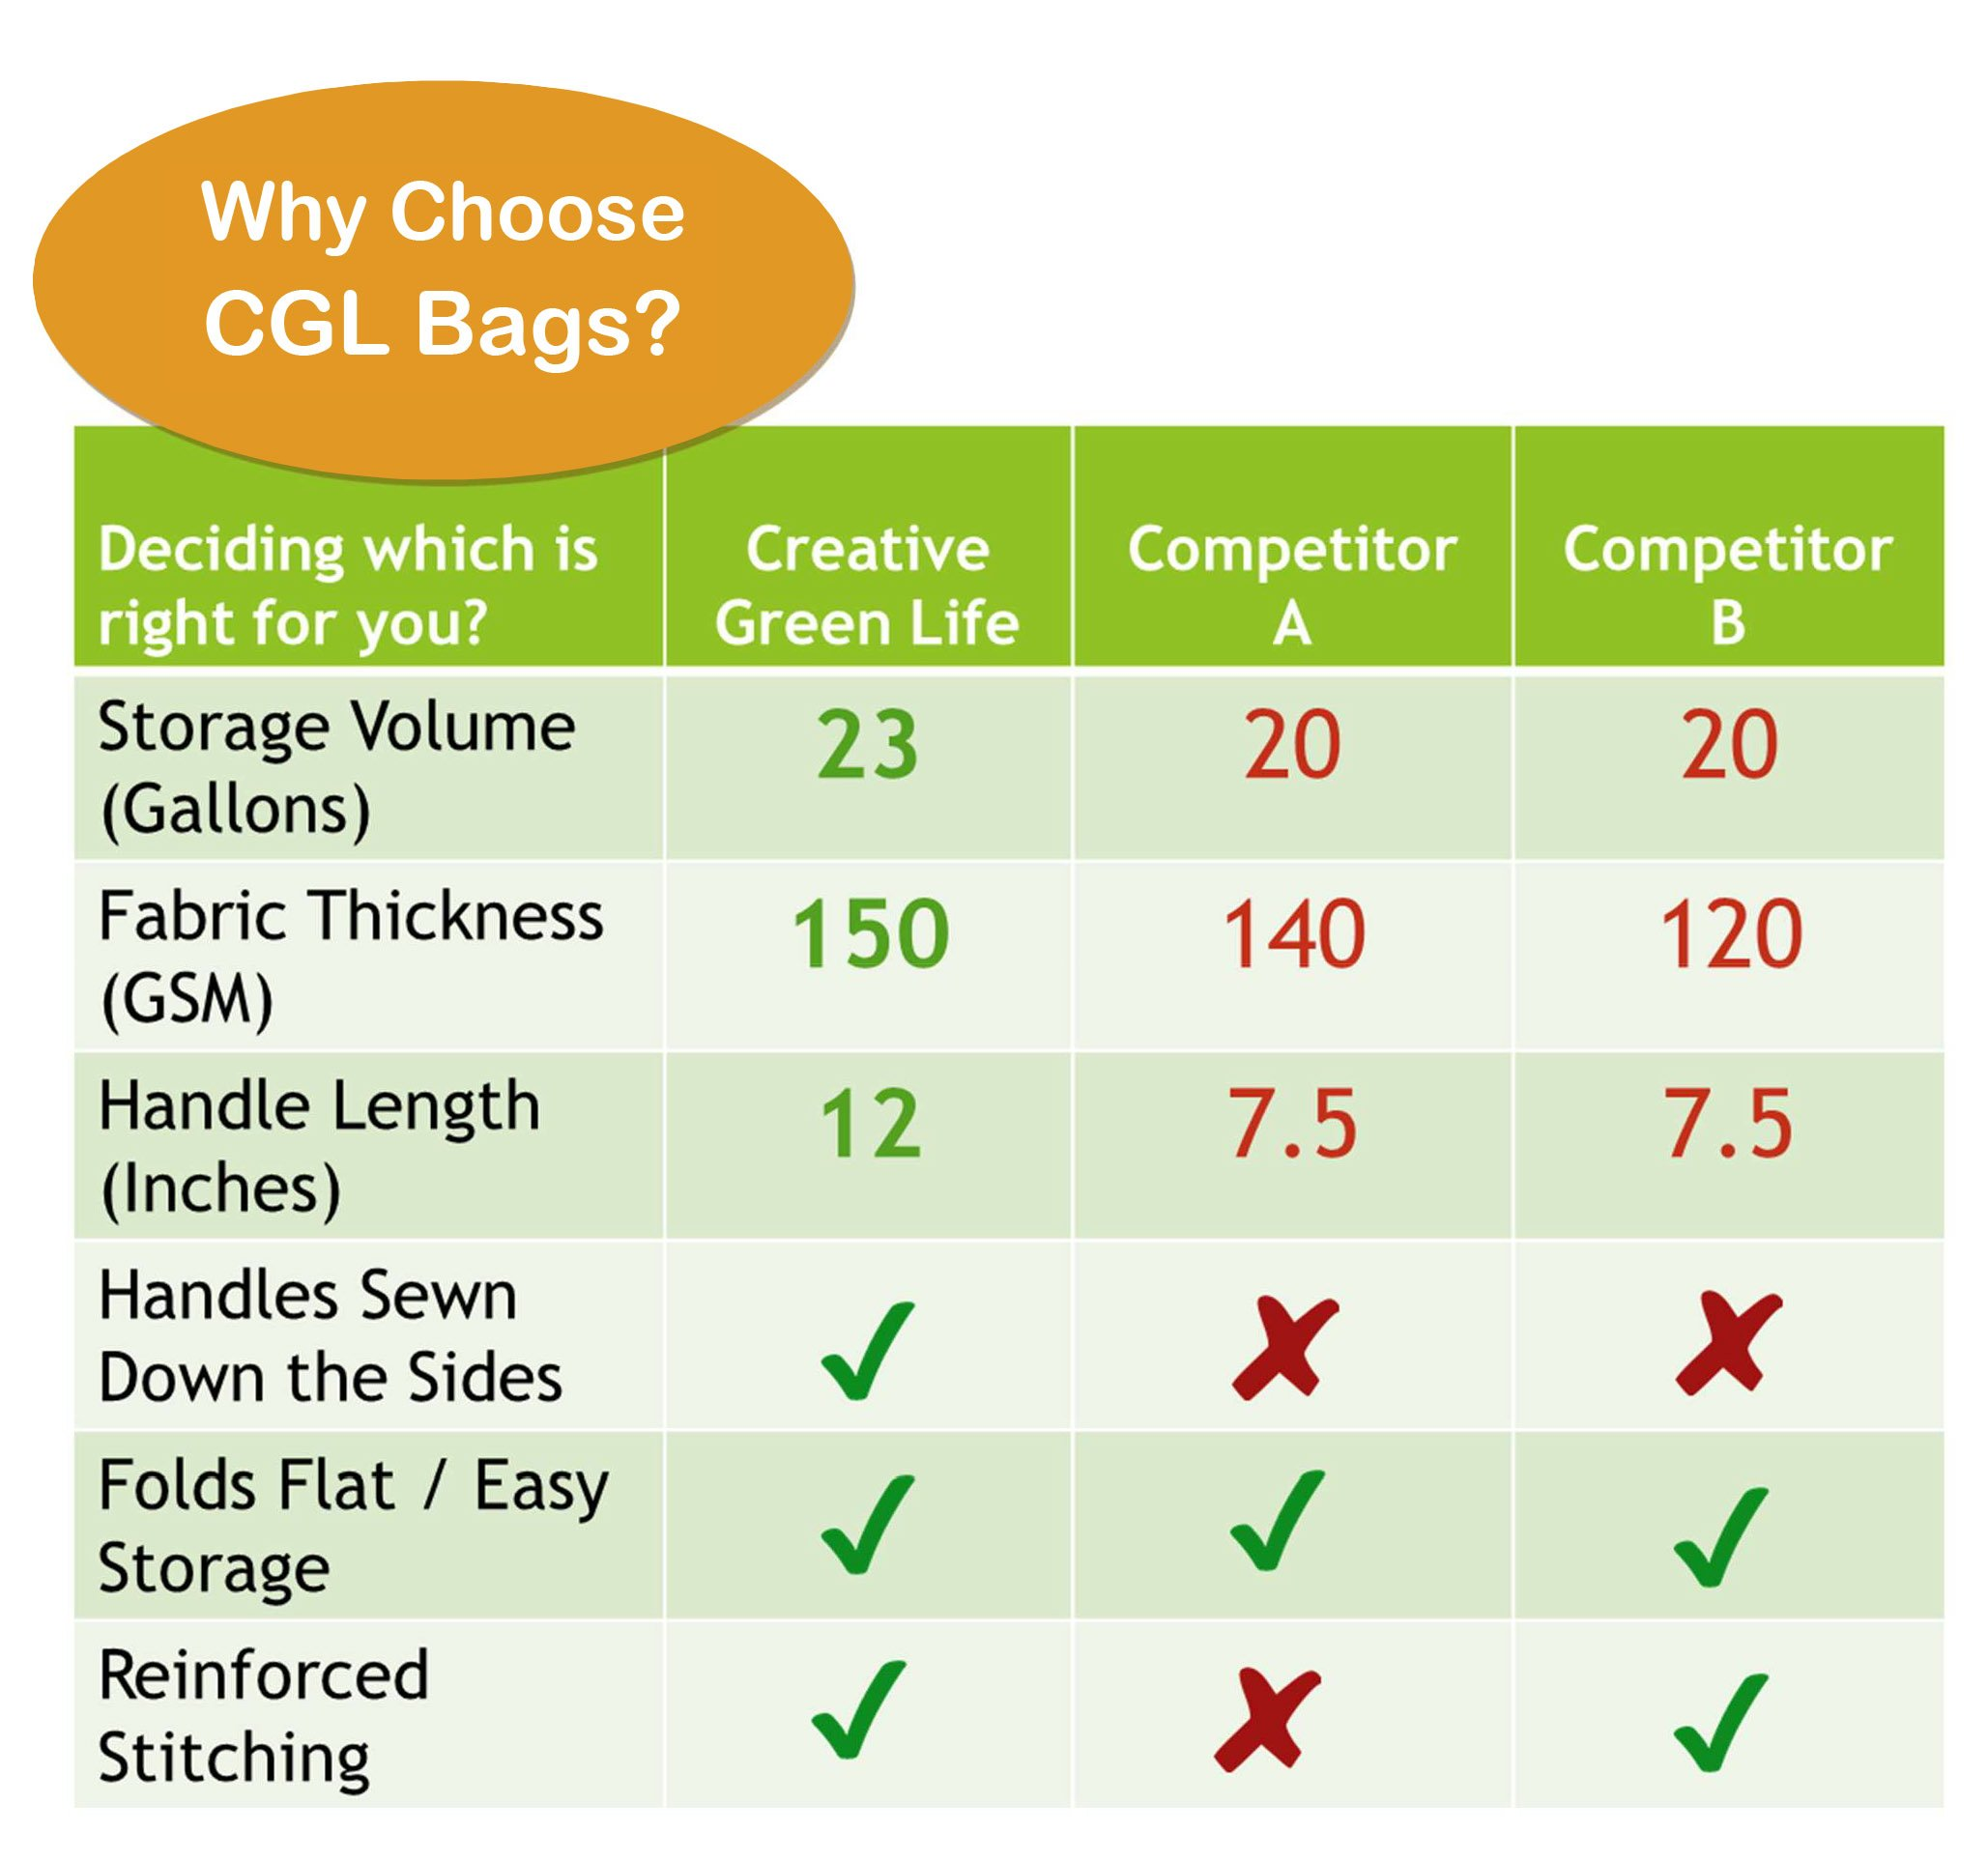 Storage and Moving Bag Set with Zipper Closure (8 Pack). Extra-large, Heavy Duty, Thick Oversized Wardrobe Totes. Bins for Clothing, Comforters, Blankets, Dorm Room Essentials, Decorations, Supplies by Creative Green Life (Image #5)